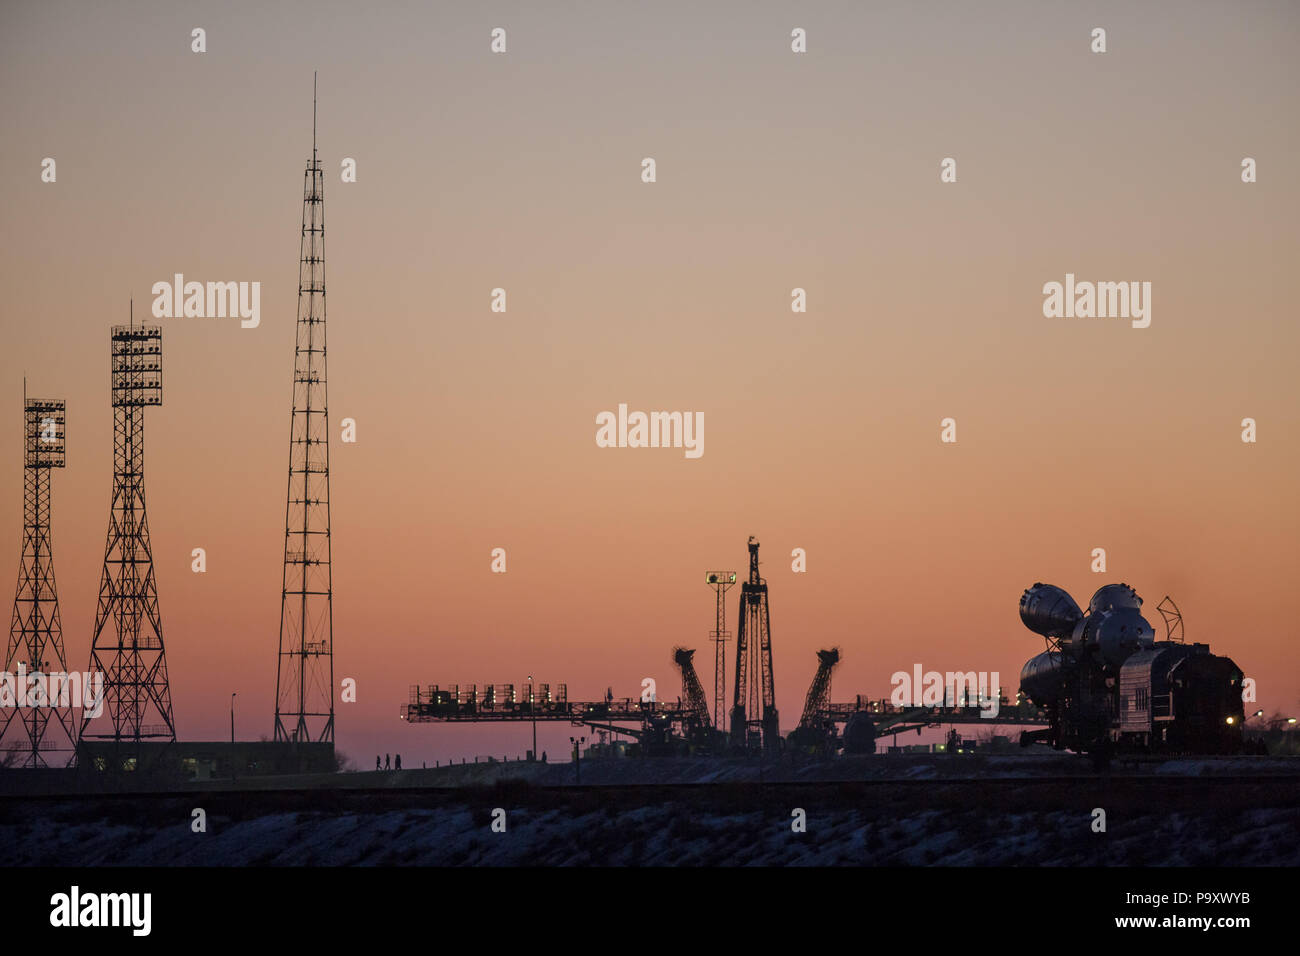 Sunday, December, 13. The Soyuz TMA-19M spaceship transported to 'Gagarinsky' launchpad of Baikonur space launch complex, Kazakhstan. Soyuz TMA-19M wi - Stock Image